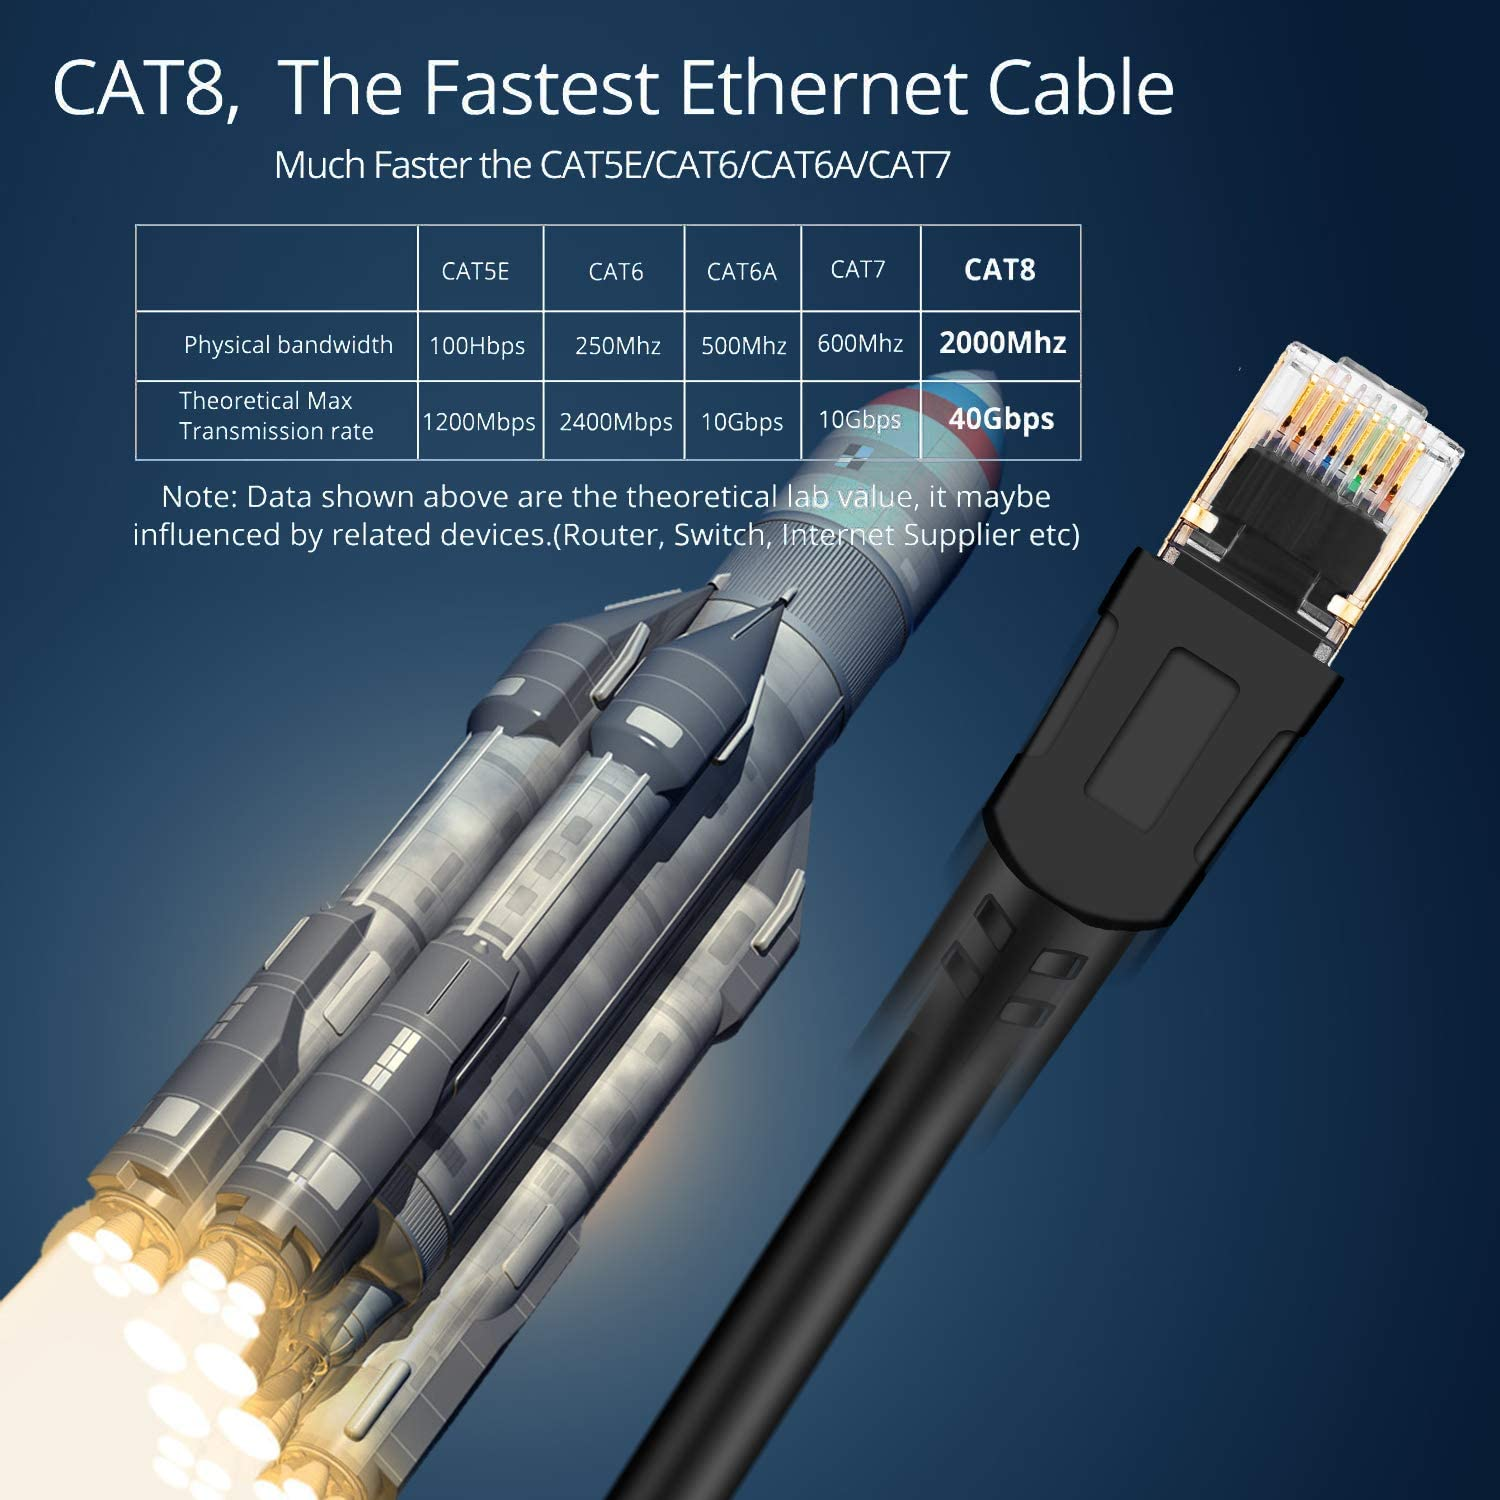 Veetcom Cat8 Ethernet Cable 65ft Heavy Duty Weatherproof S//FTP UV Resistant for Modem High Speed 26AWG Cat8 LAN Network Cable 40Gbps 2000Mhz with Gold Plated RJ45 Connector Router//Gaming//Xbox